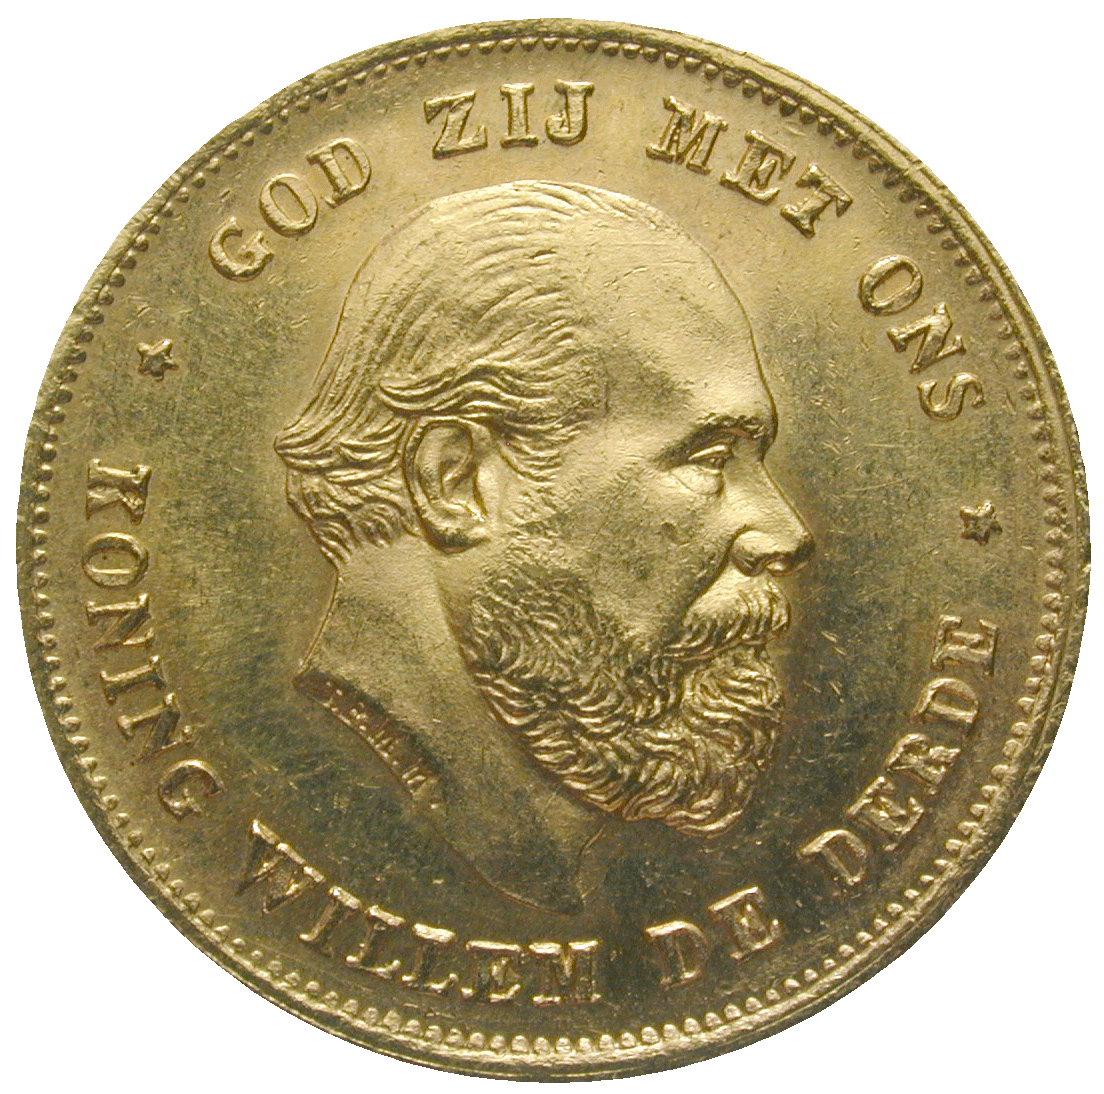 Kingdom of the Netherlands, William III, 10 Gulden 1875 (obverse)